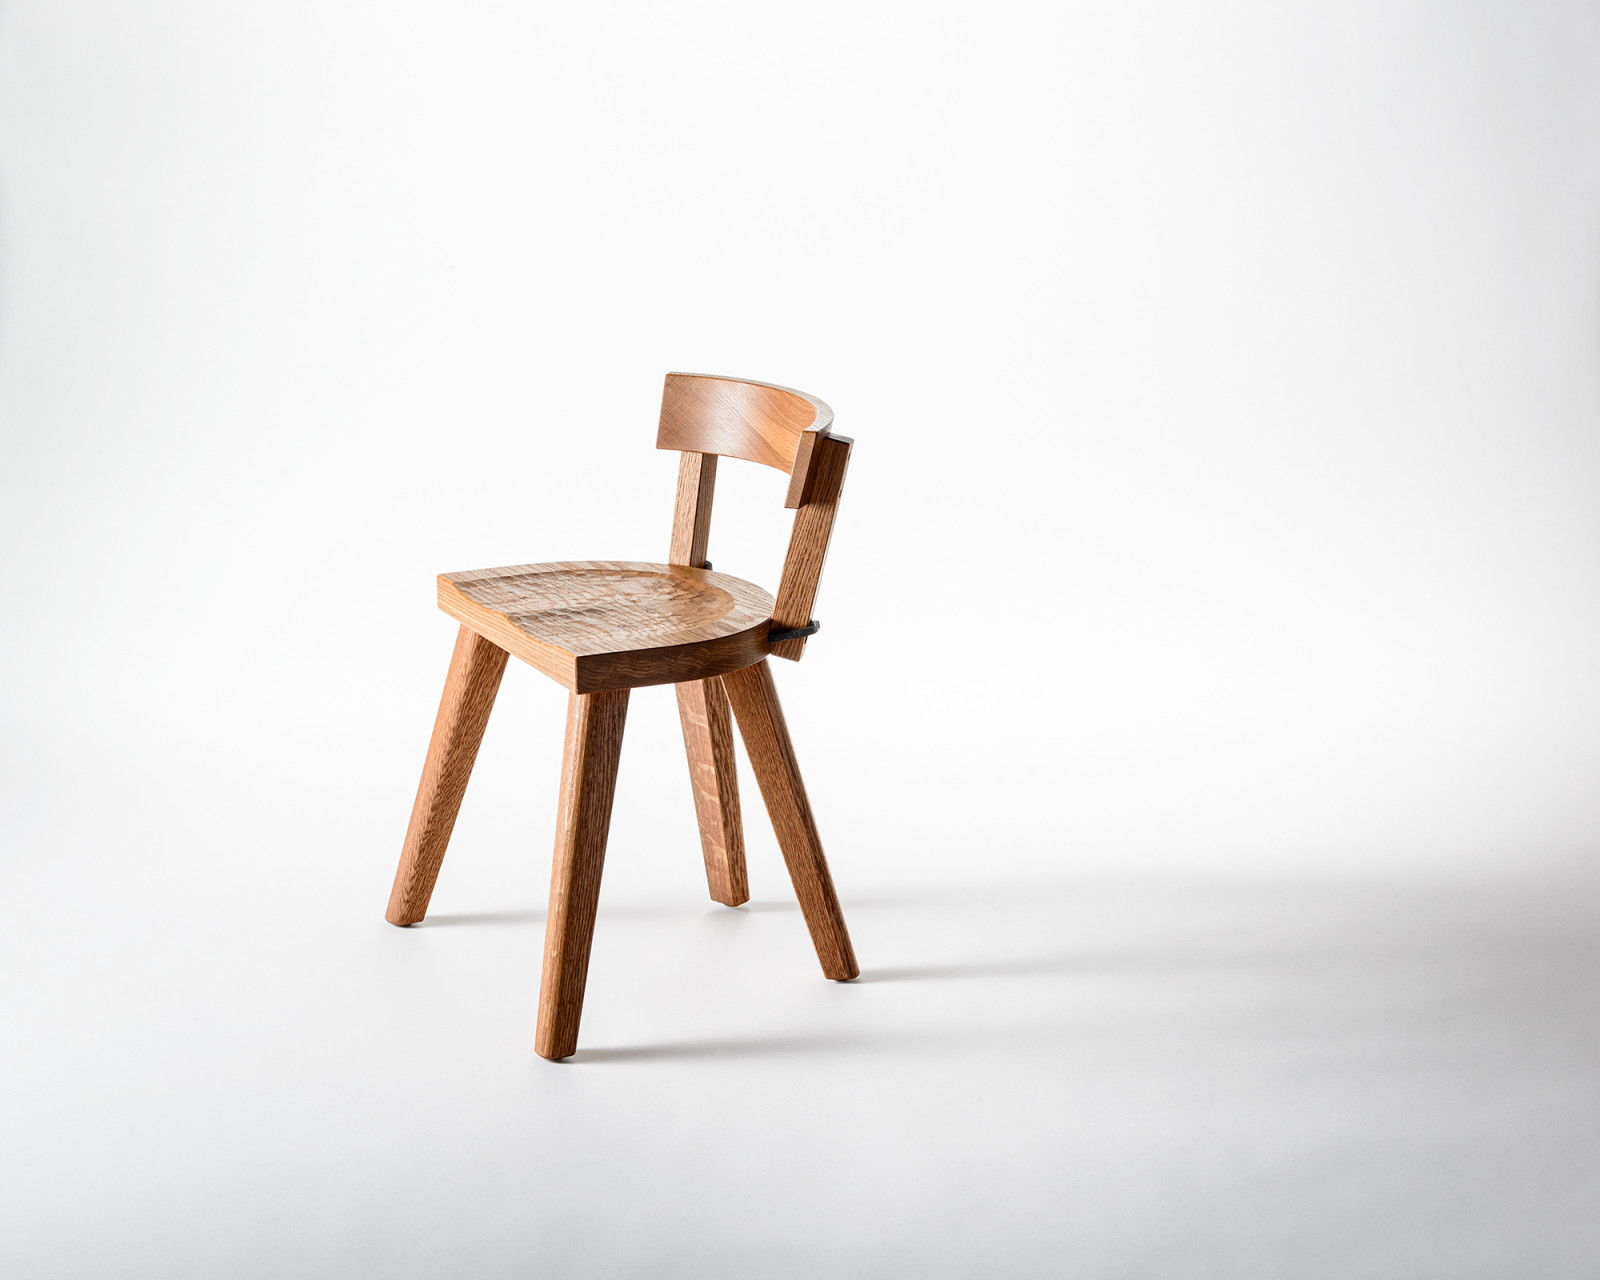 The Chair with four legs - Furniture Marolles / Carneros Studios